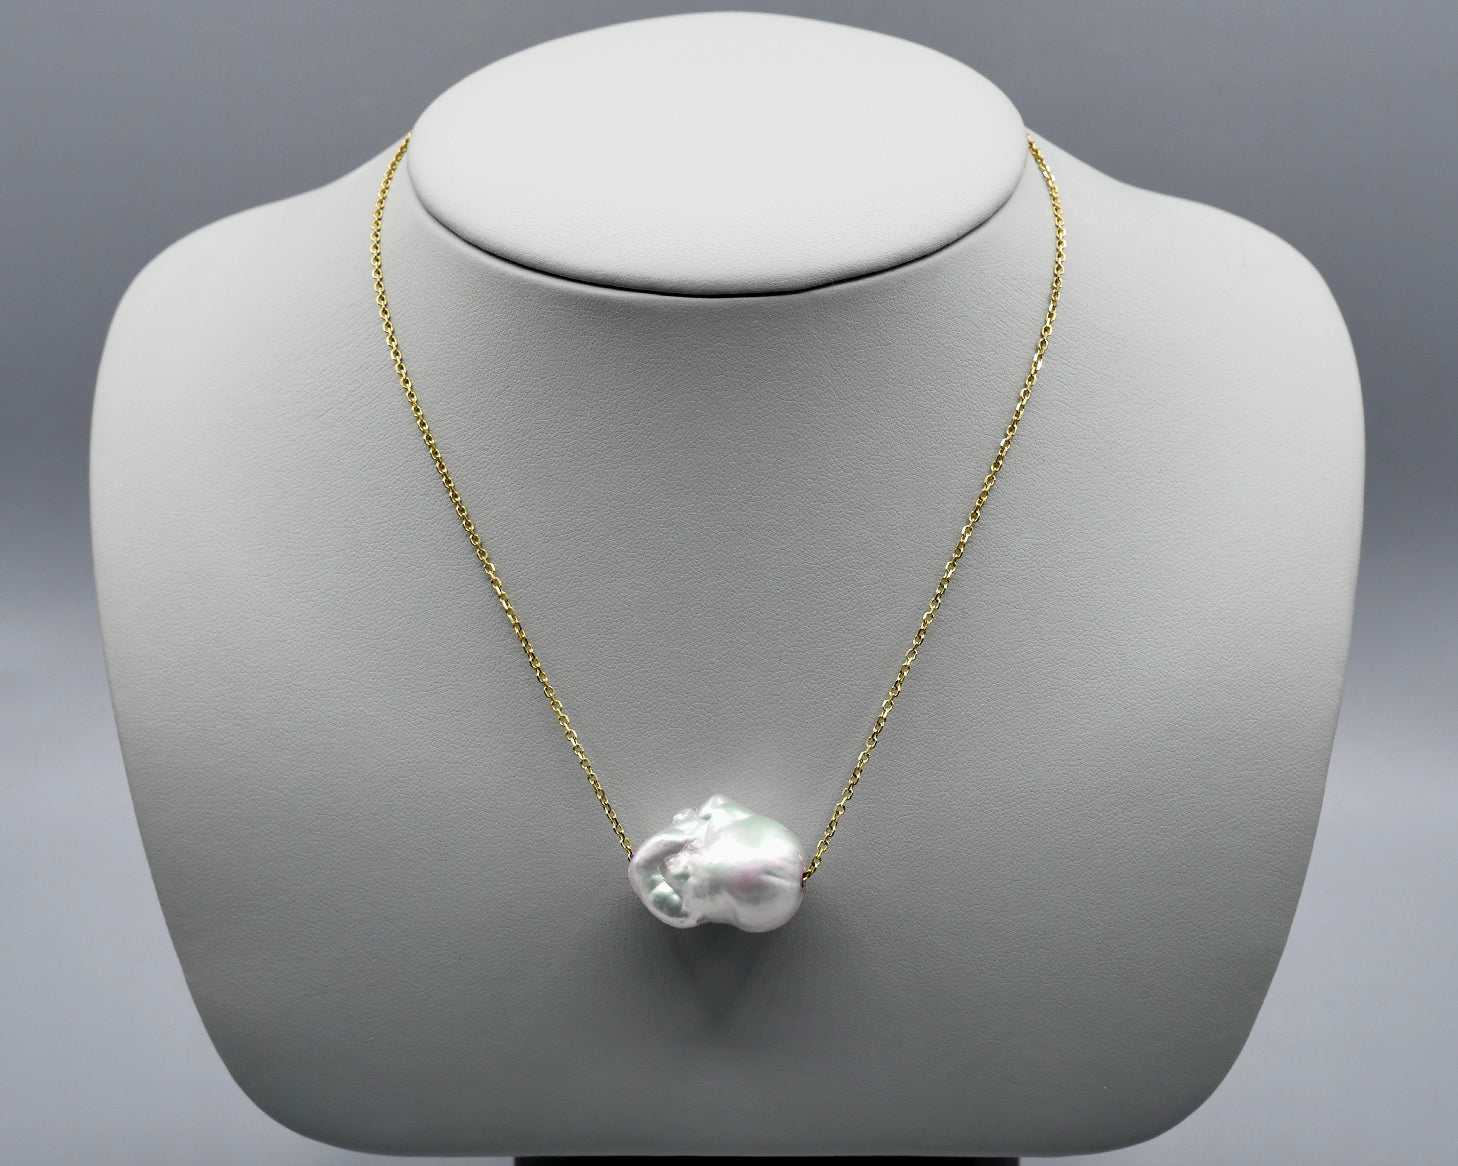 Single South Sea Pearl Necklace